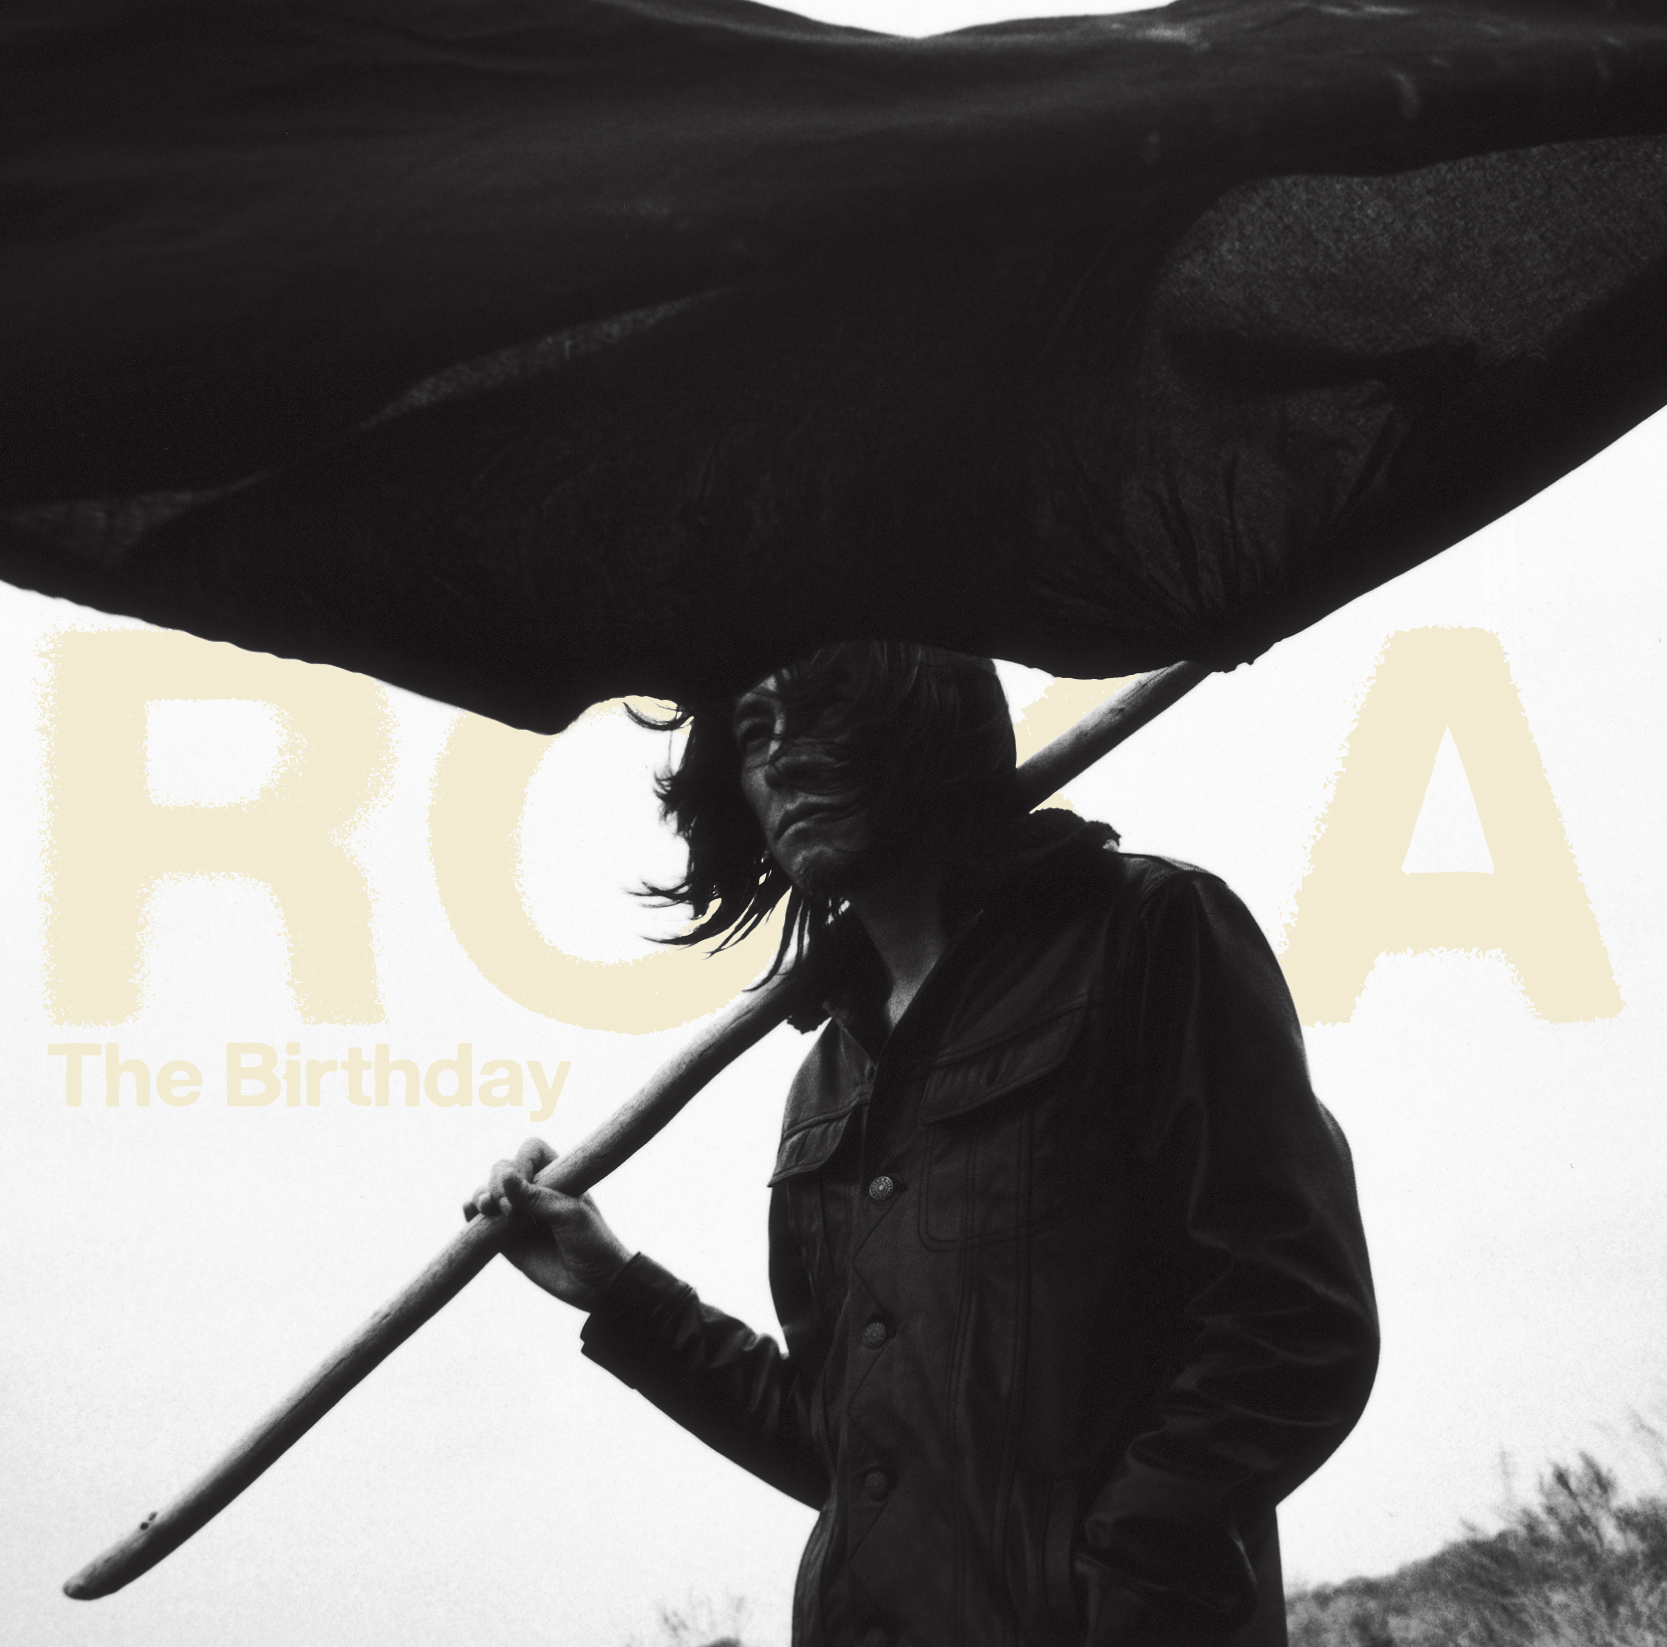 The Birthday 「ROKA」